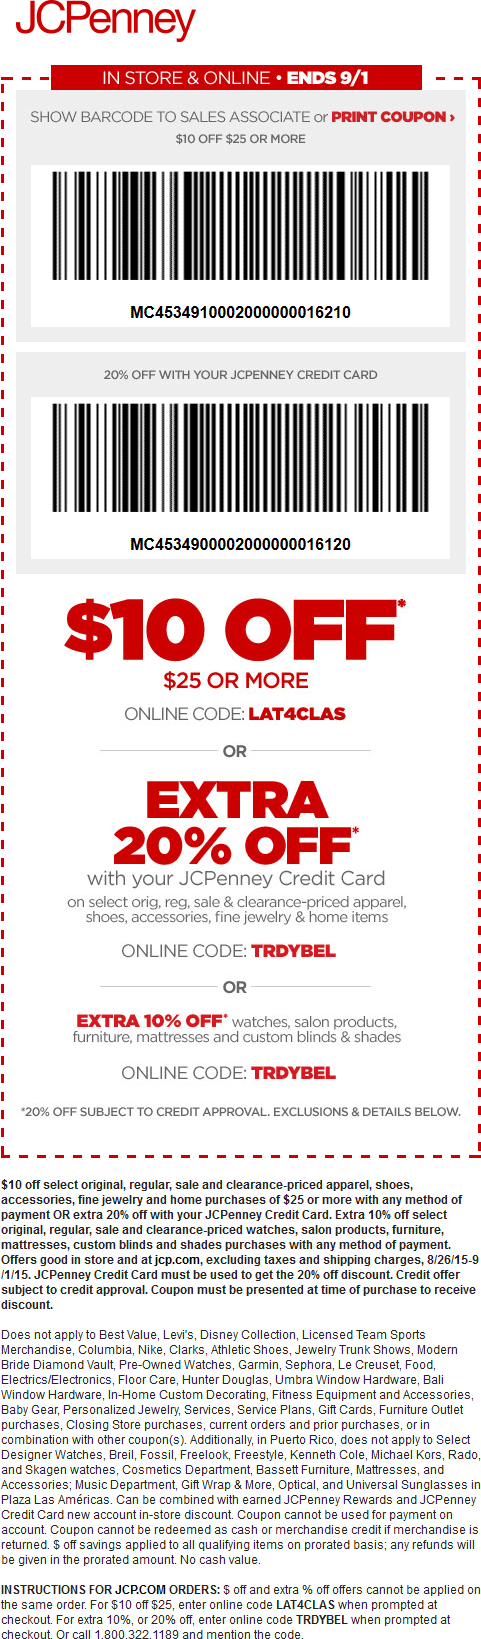 JCPenney Coupon September 2018 $10 off $25 at JCPenney, or online via promo code LAT4CLAS